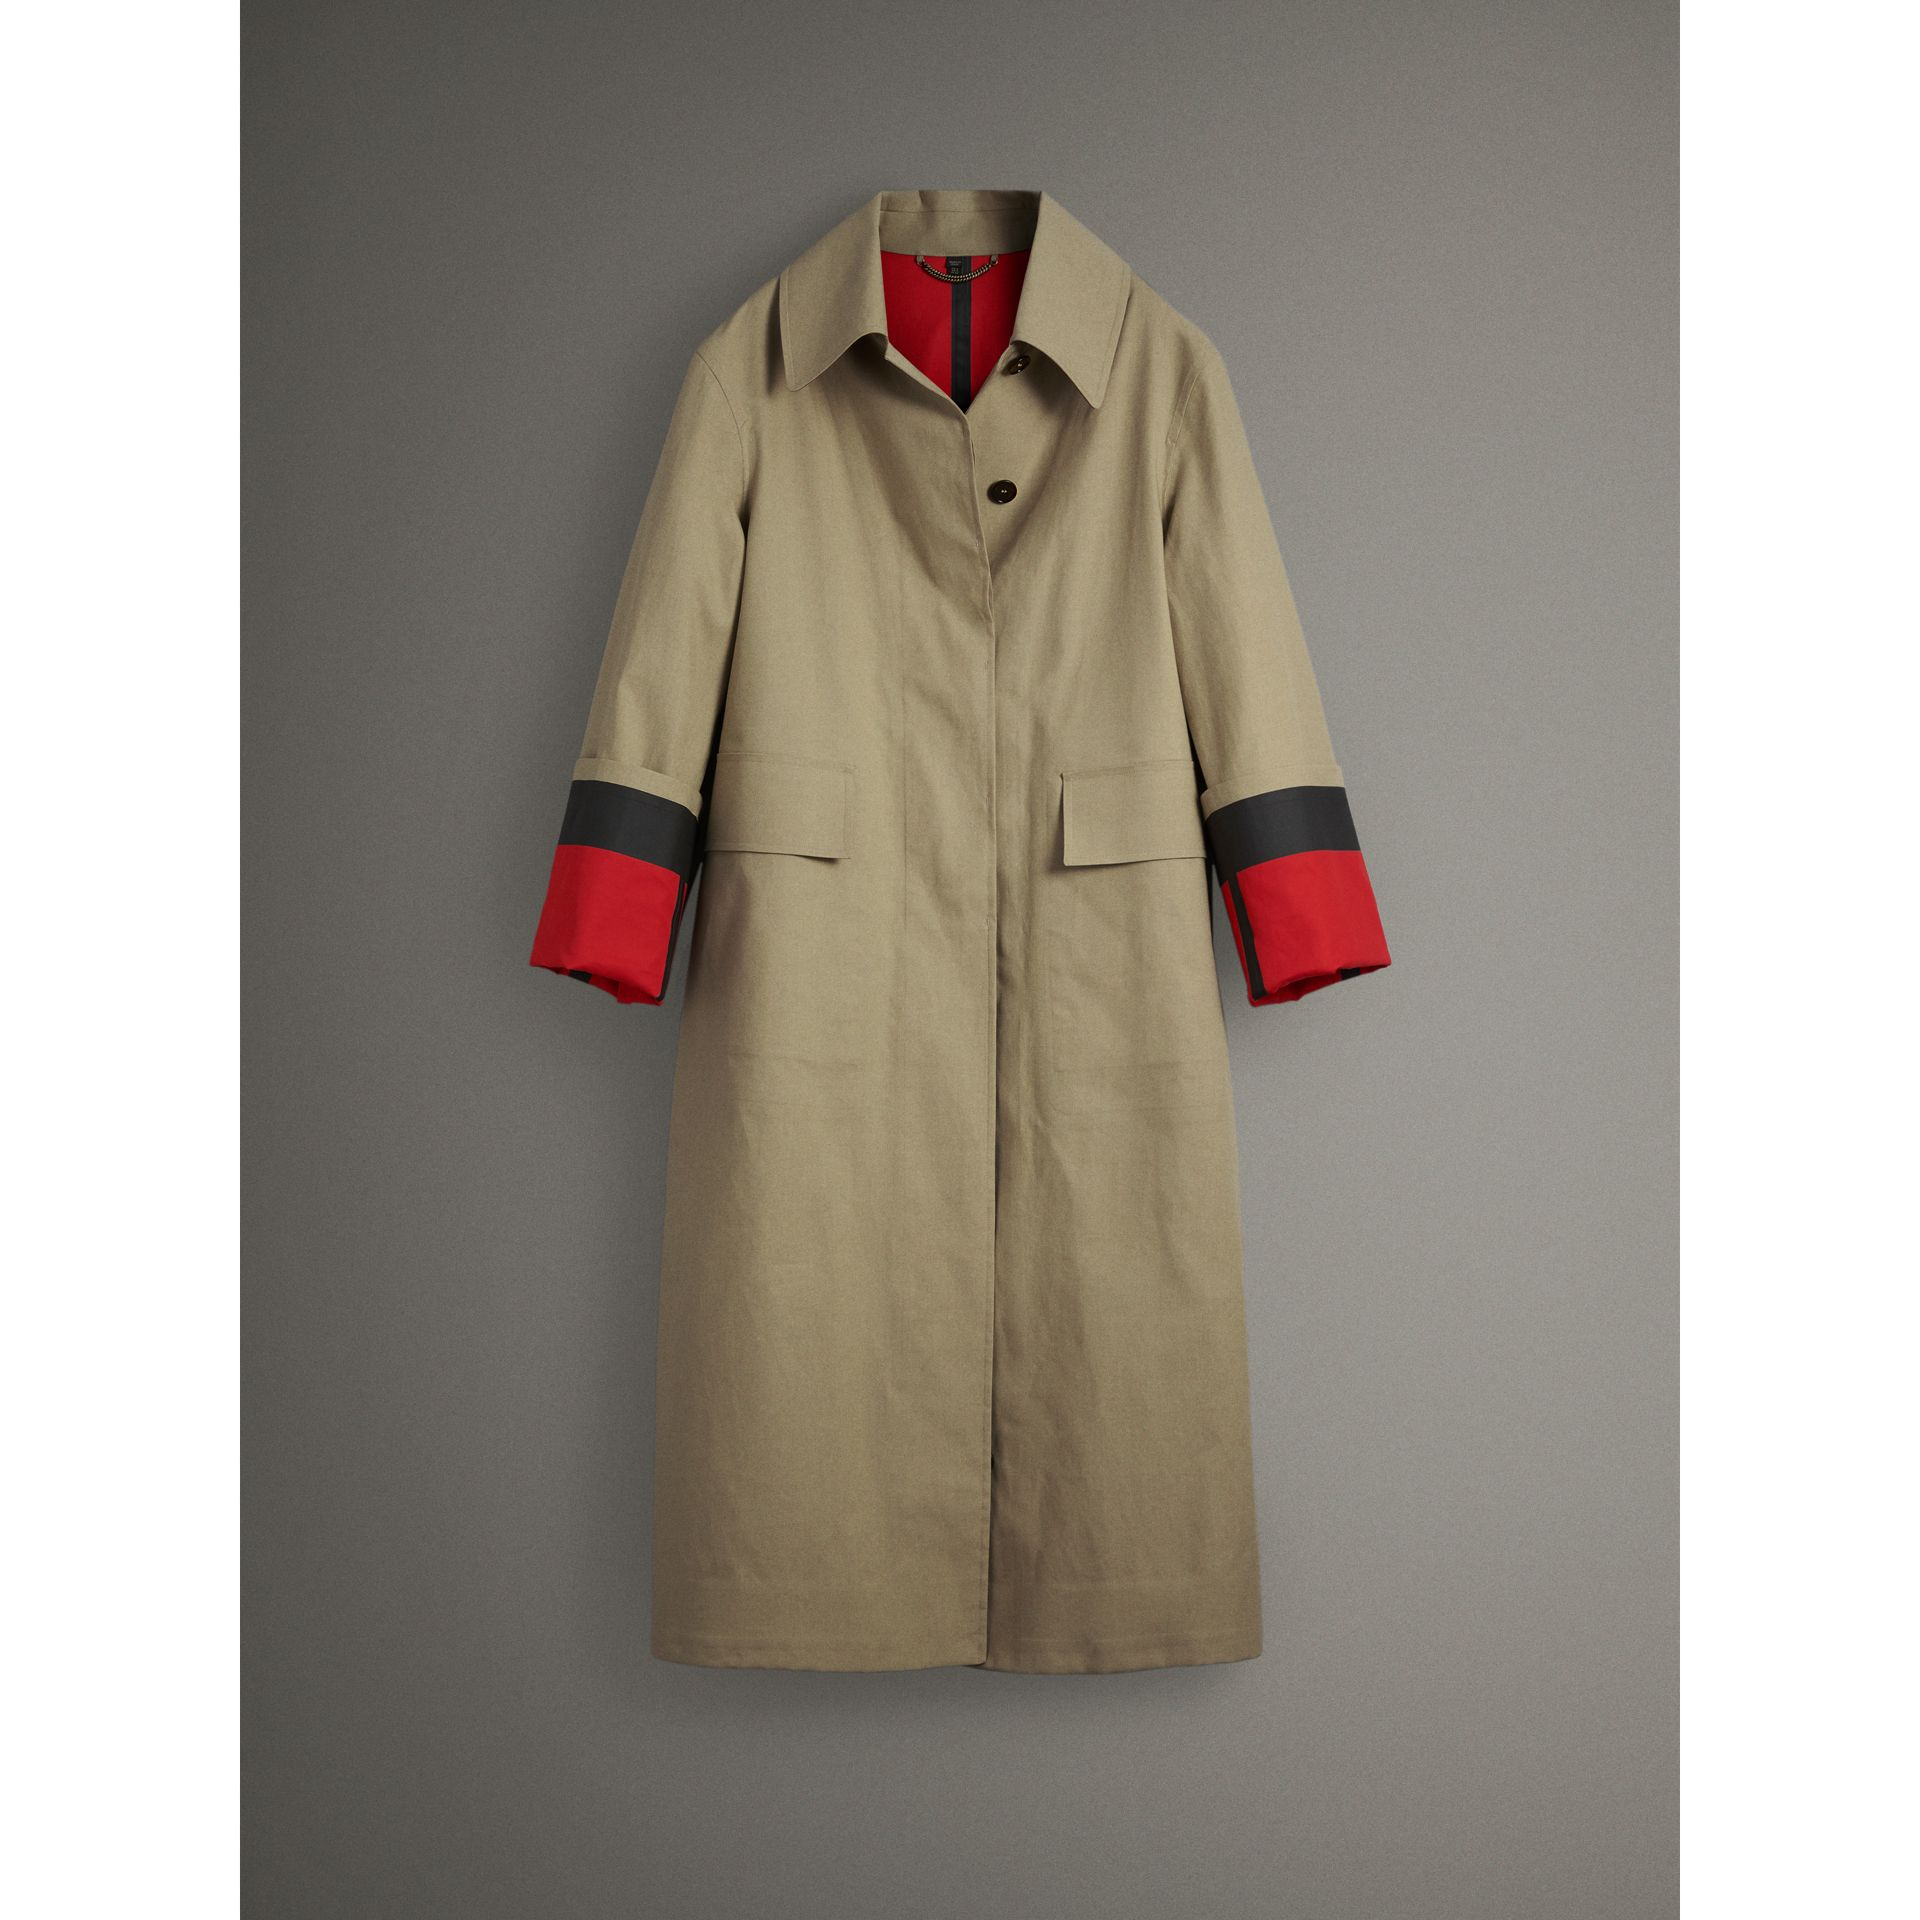 Bonded Cotton Poplin Seam-sealed Car Coat in Beige/red - Women | Burberry - gallery image 4